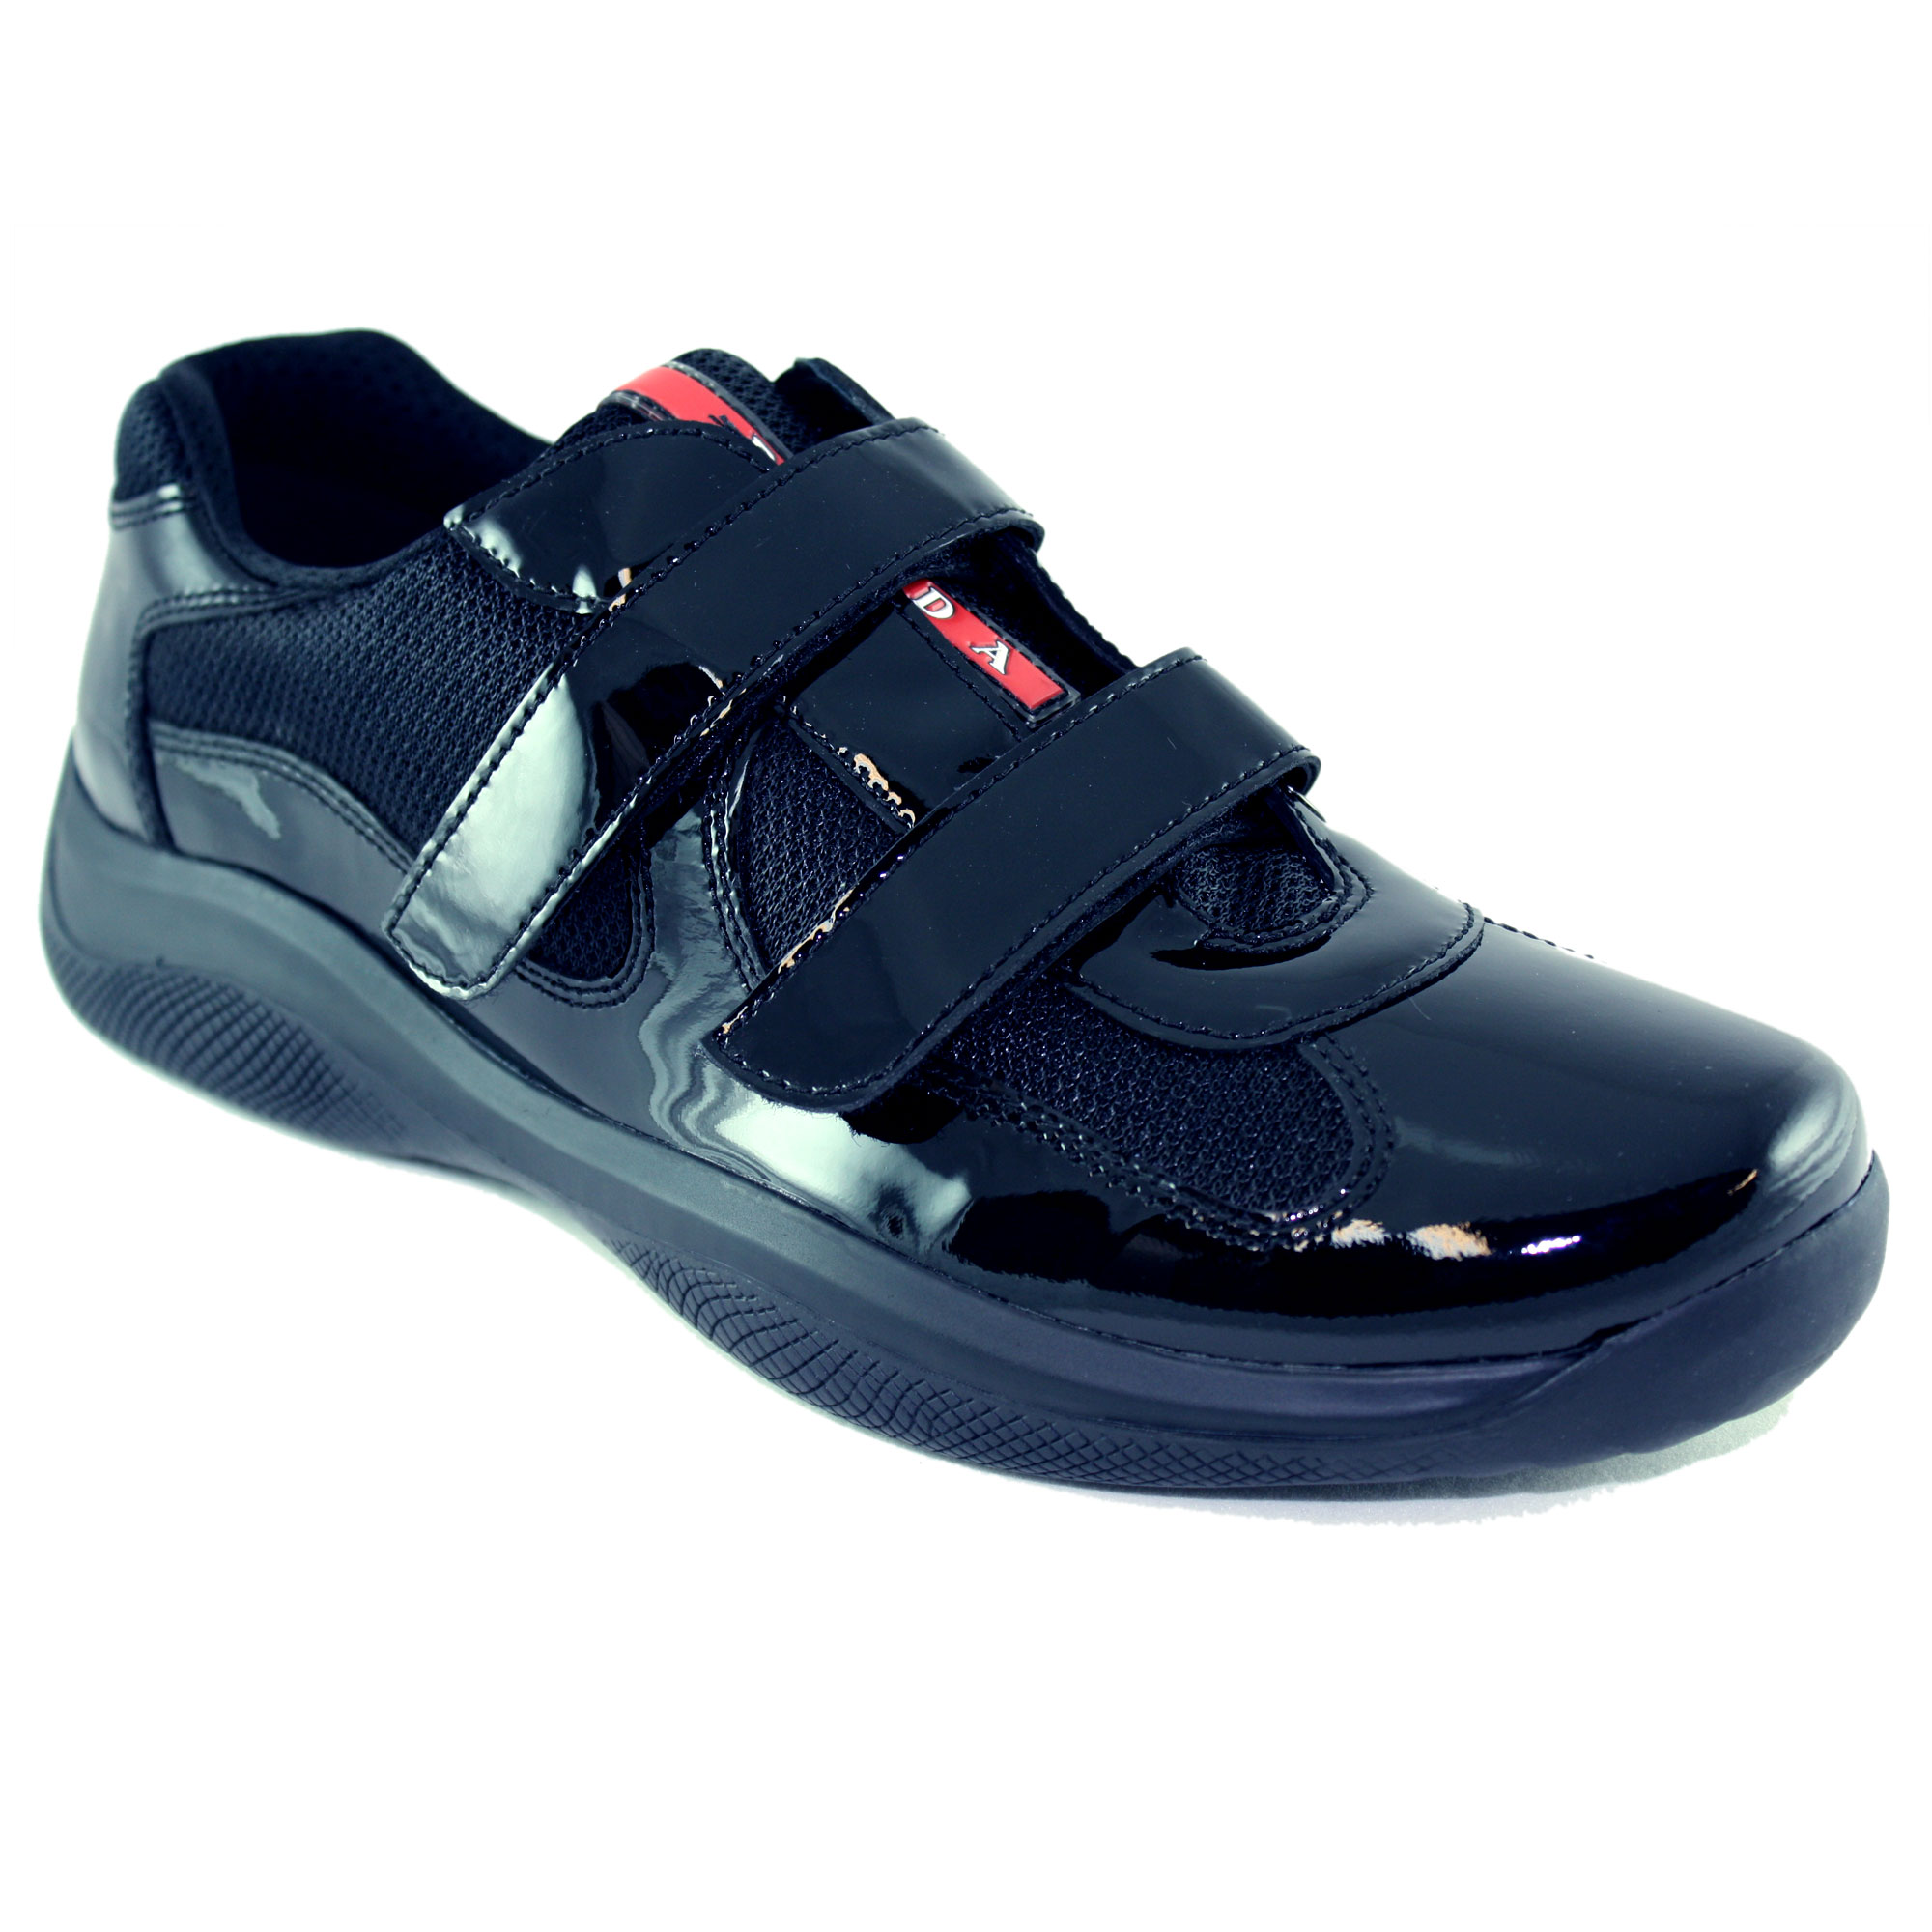 prada shoes for men bing images